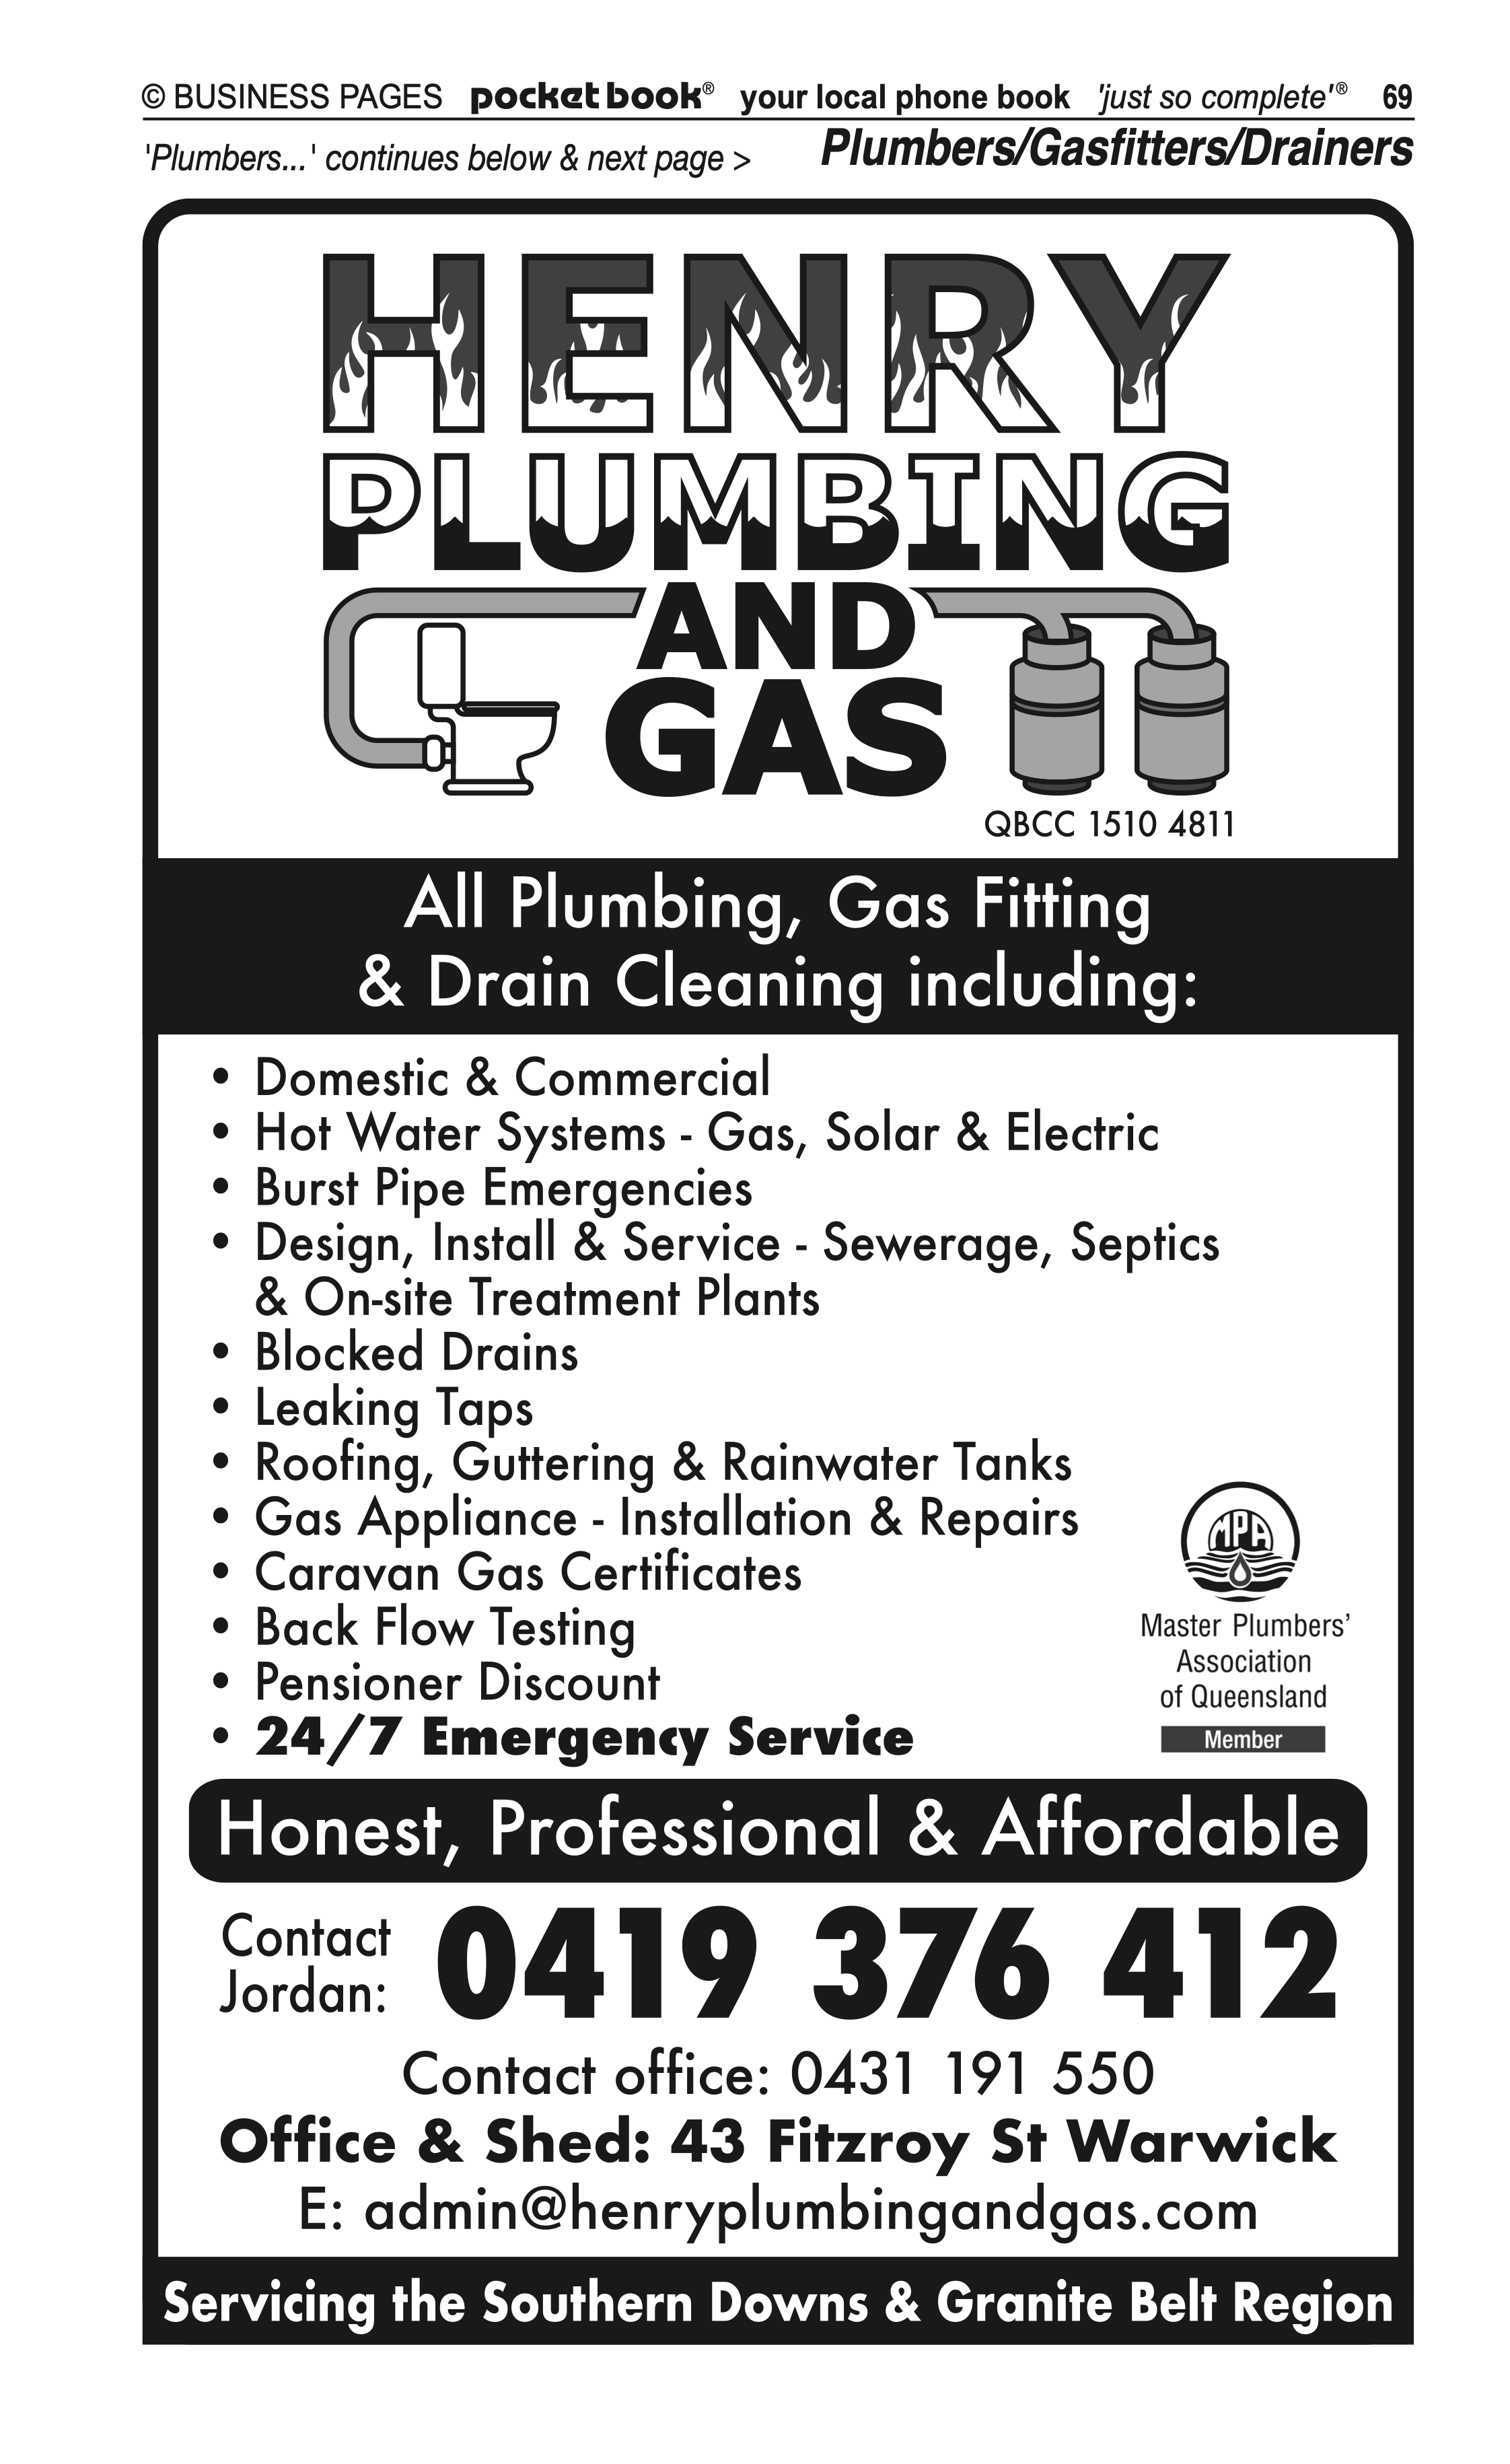 Albion St Auto Centre | Motor – Mufflers, Exhausts in Warwick | PBezy Pocket Books local directories - page 69